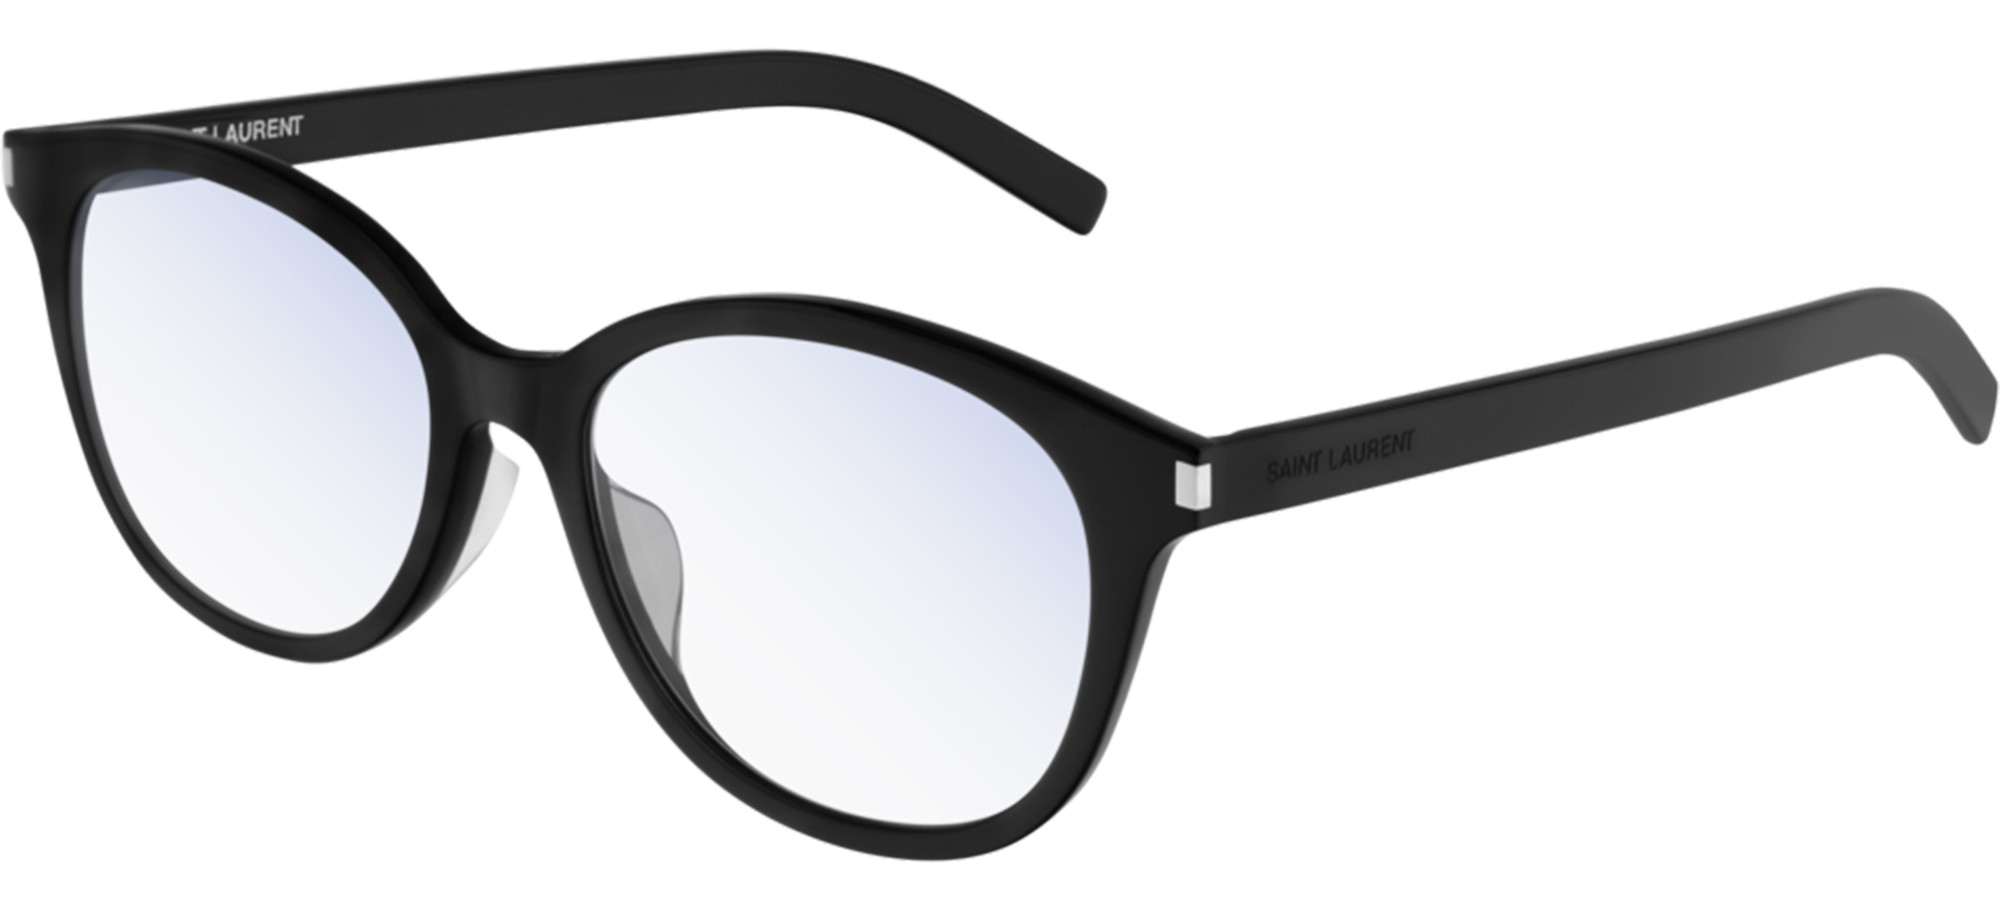 Saint Laurent eyeglasses SL 290/F SLIM